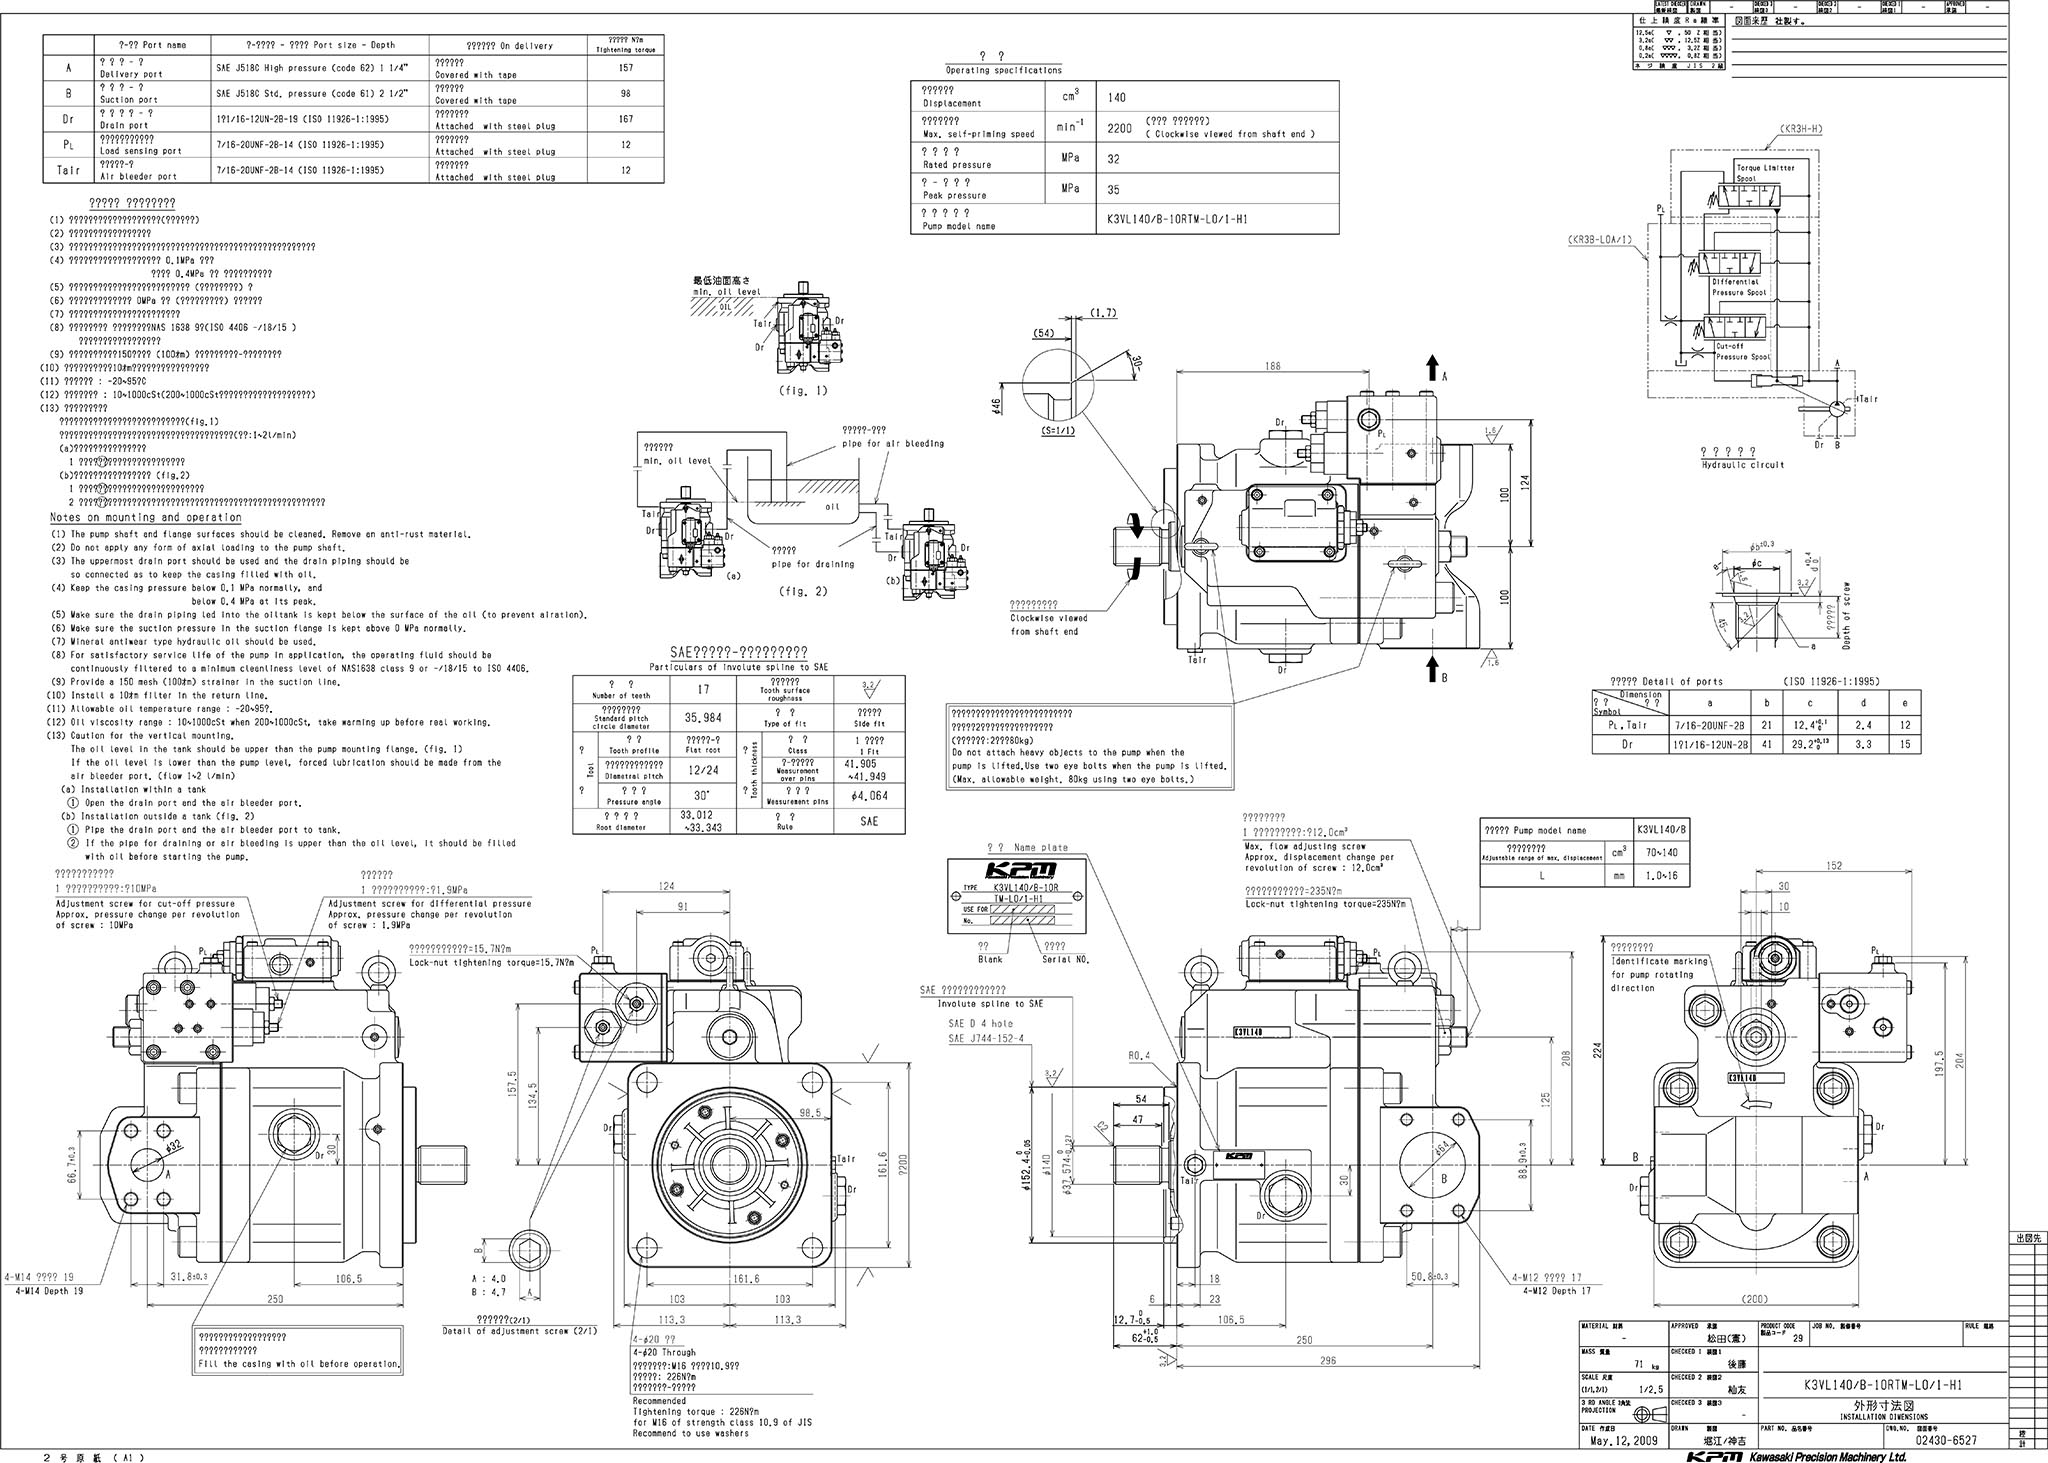 Engineering Drawing Symbols And Their Meanings Pdf At Getdrawings Kawasaki Wiring Diagram Chart 2048x1463 K3vl Axial Piston Pump